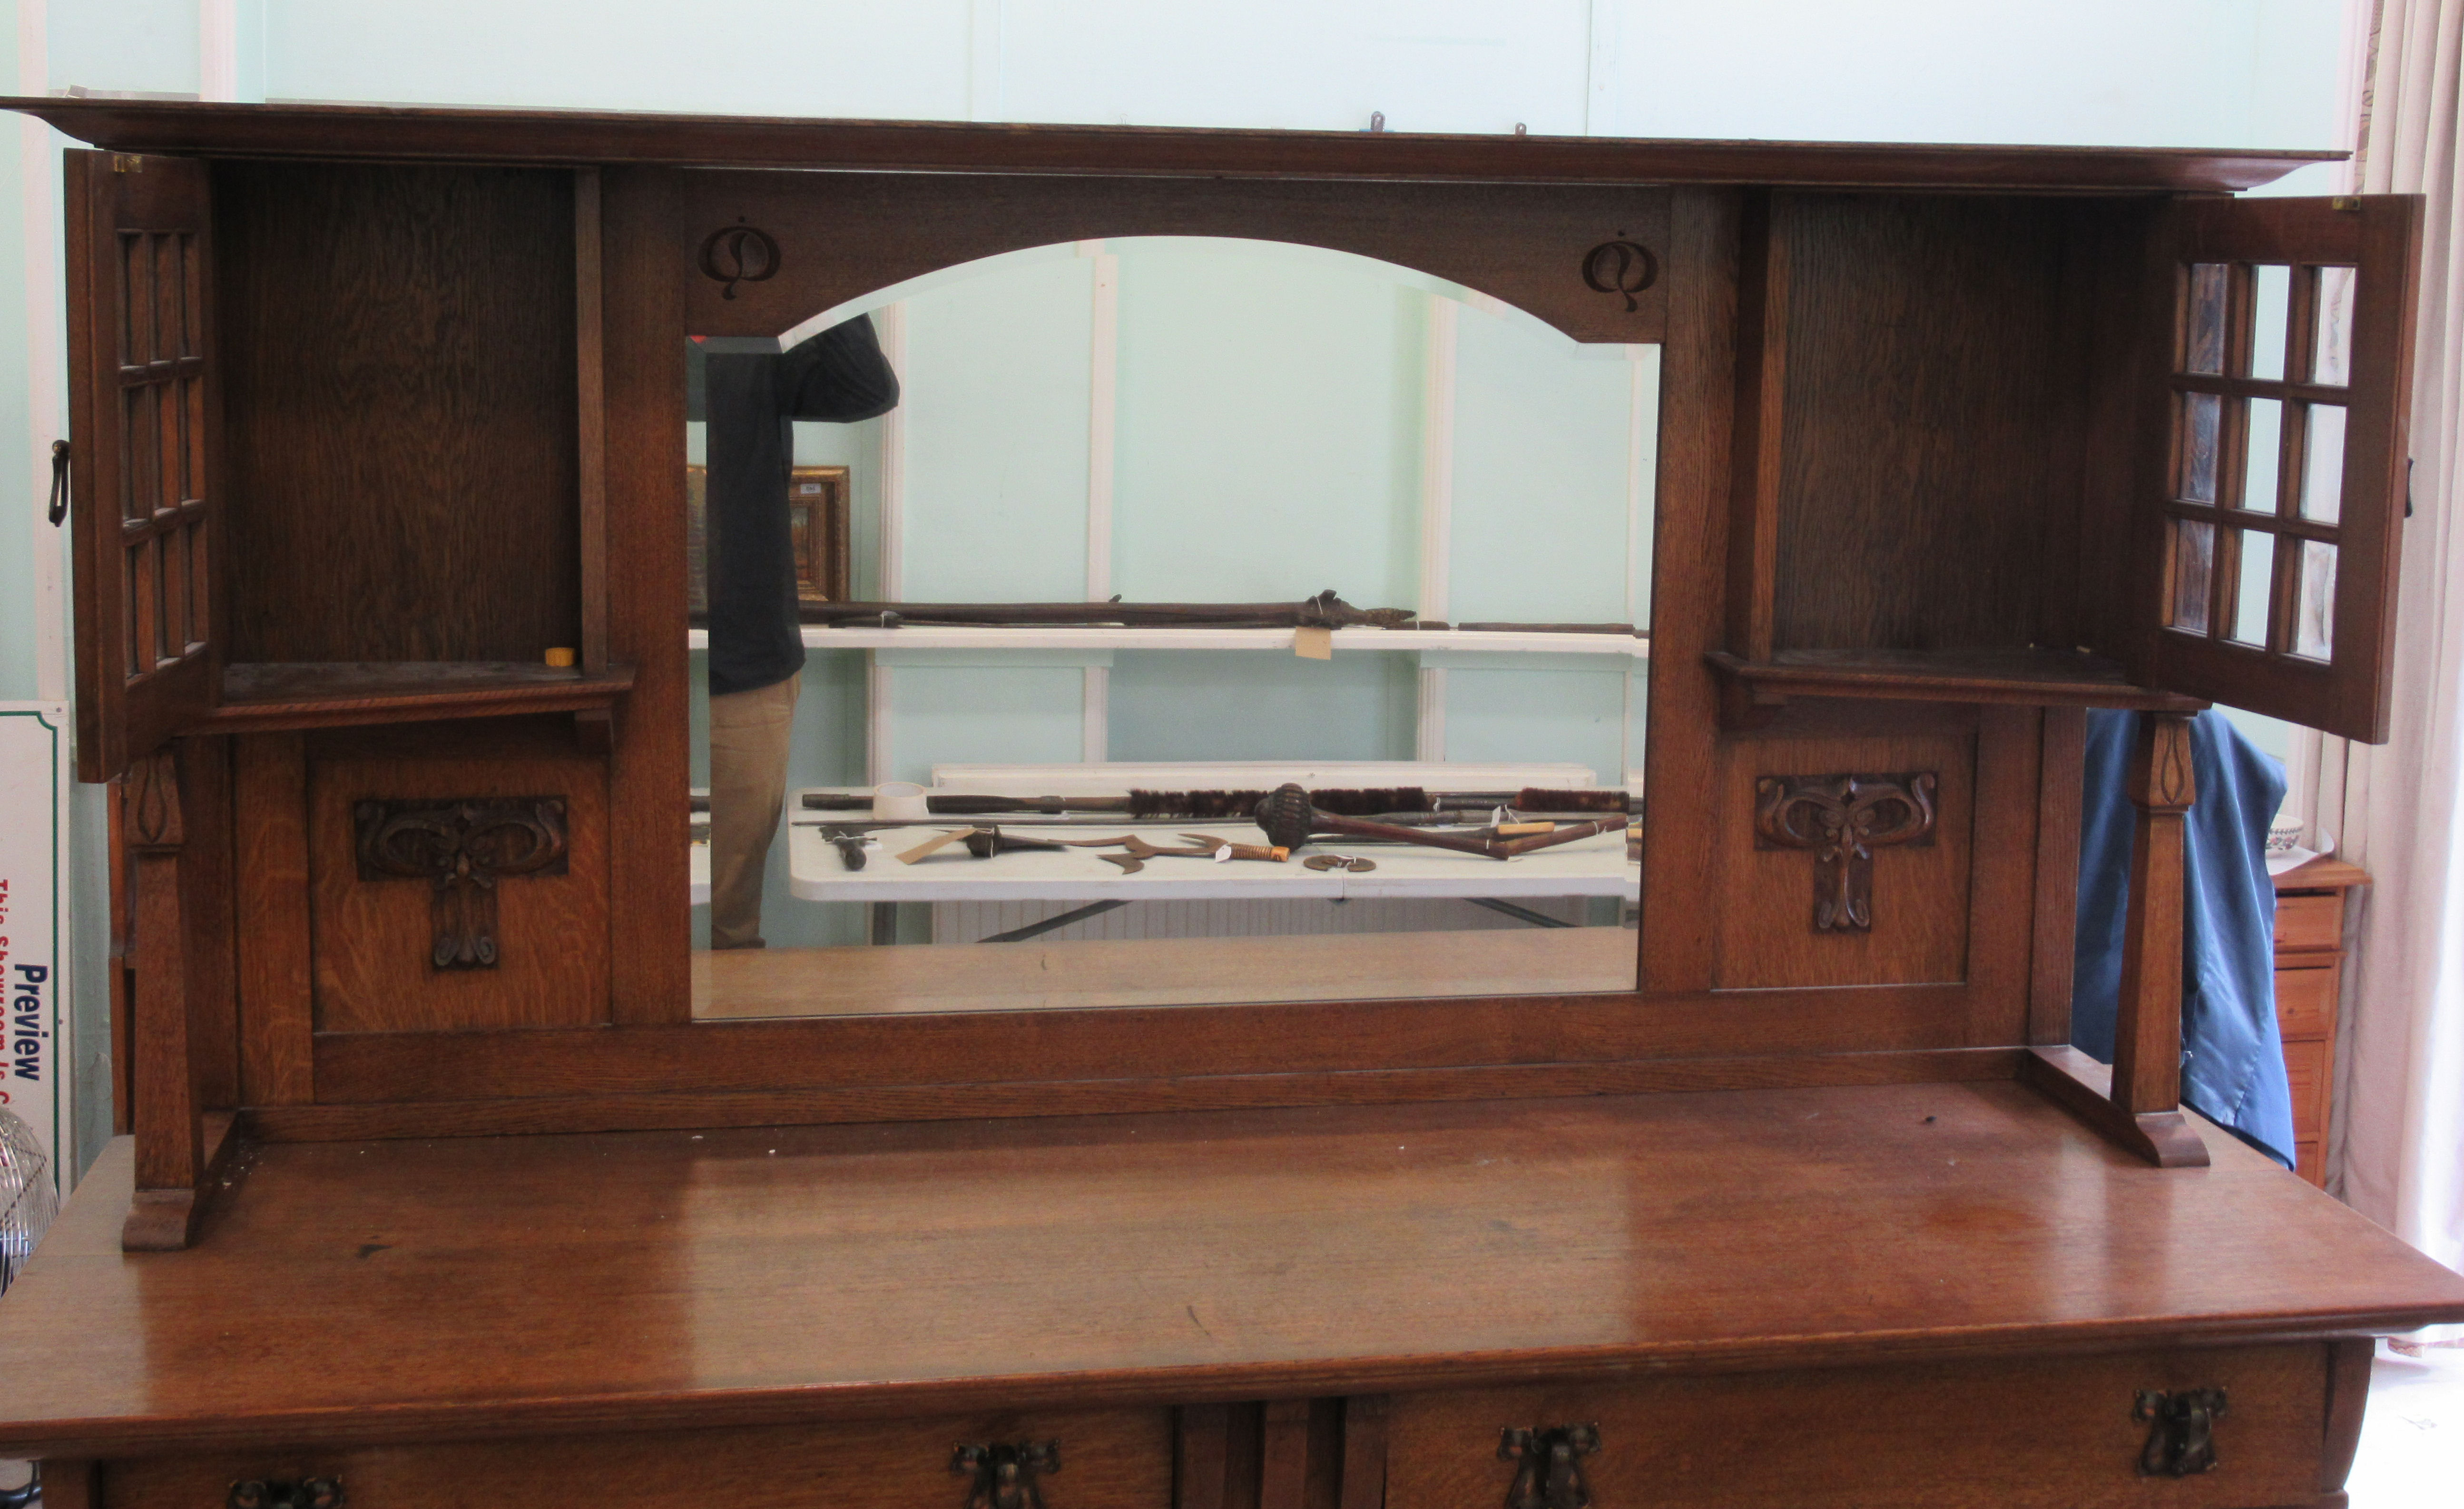 An early 20thC Liberty & Co light oak dresser with carved organically inspired ornament, the - Image 6 of 14